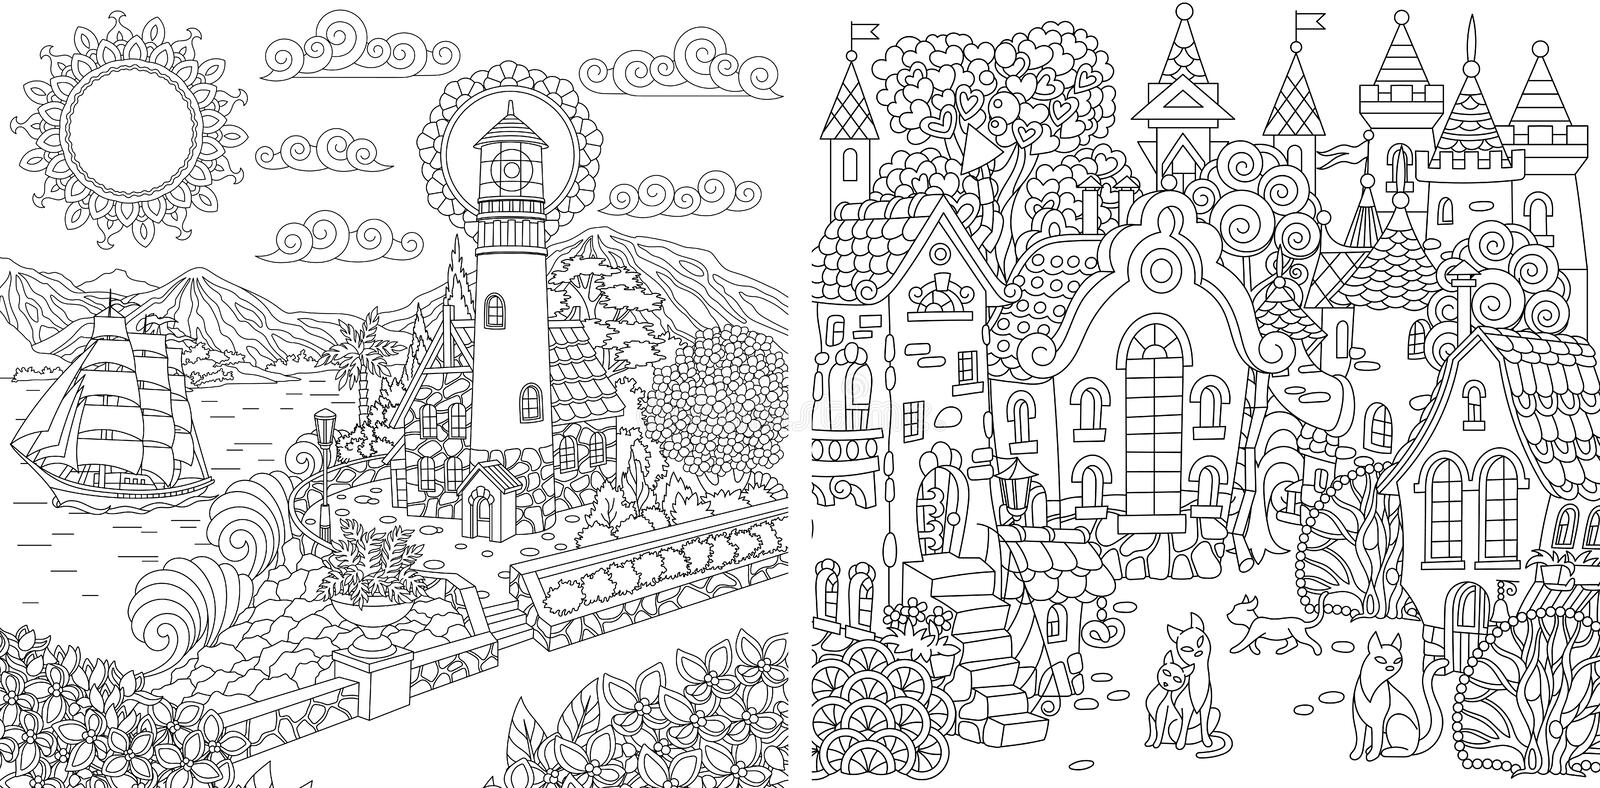 Coloring pages with town landscapes royalty free illustration